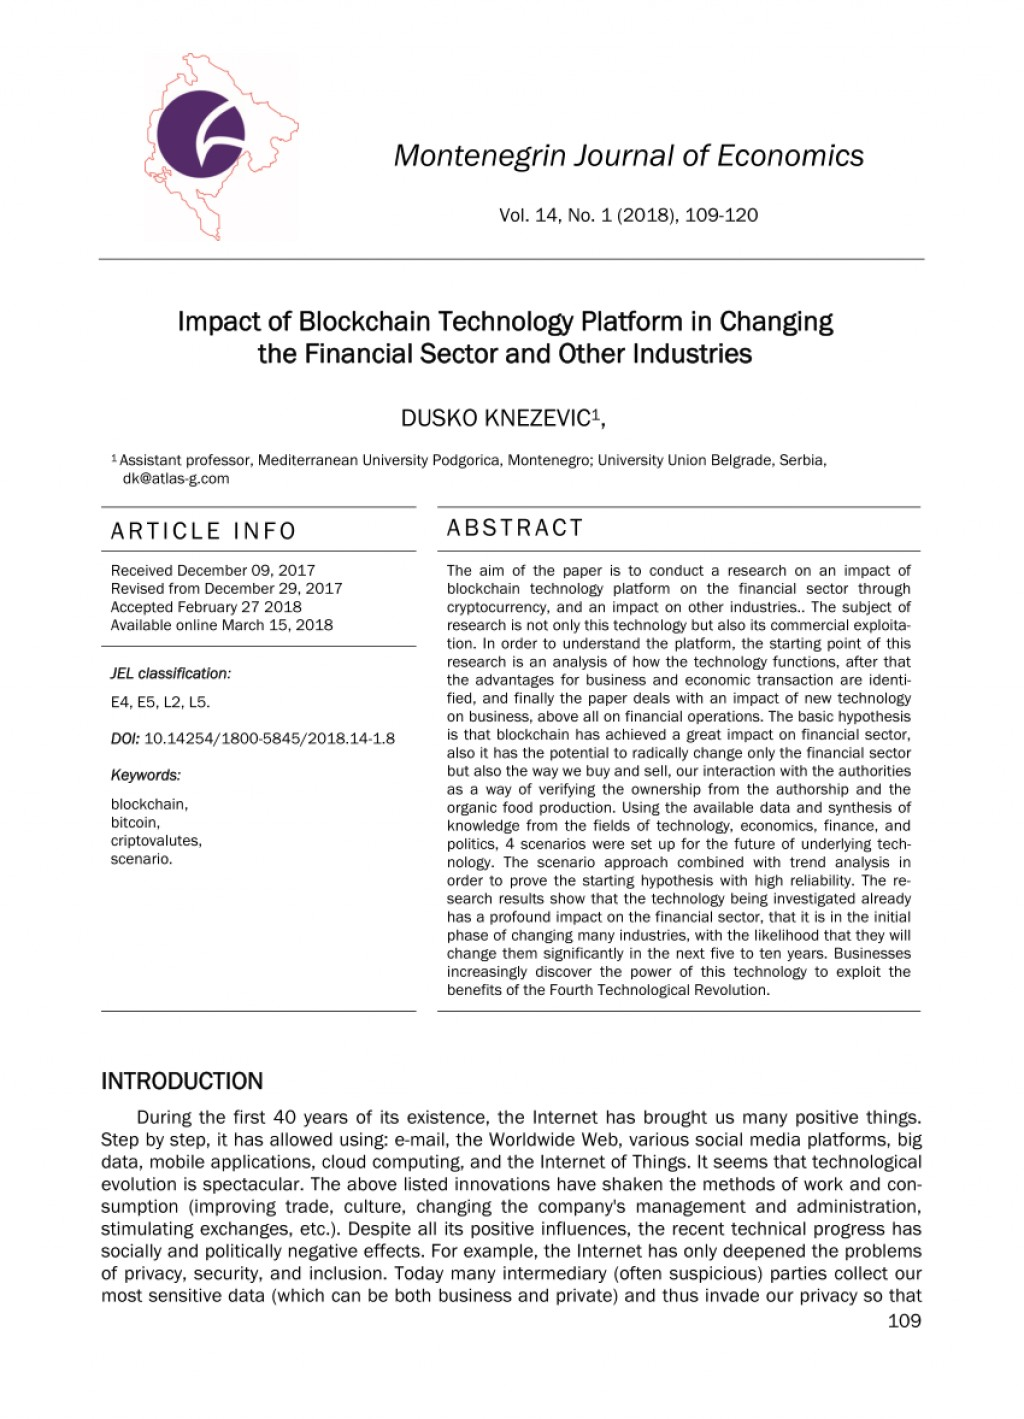 005 Largepreview Blockchain Technology Researchs Incredible Research Papers Large